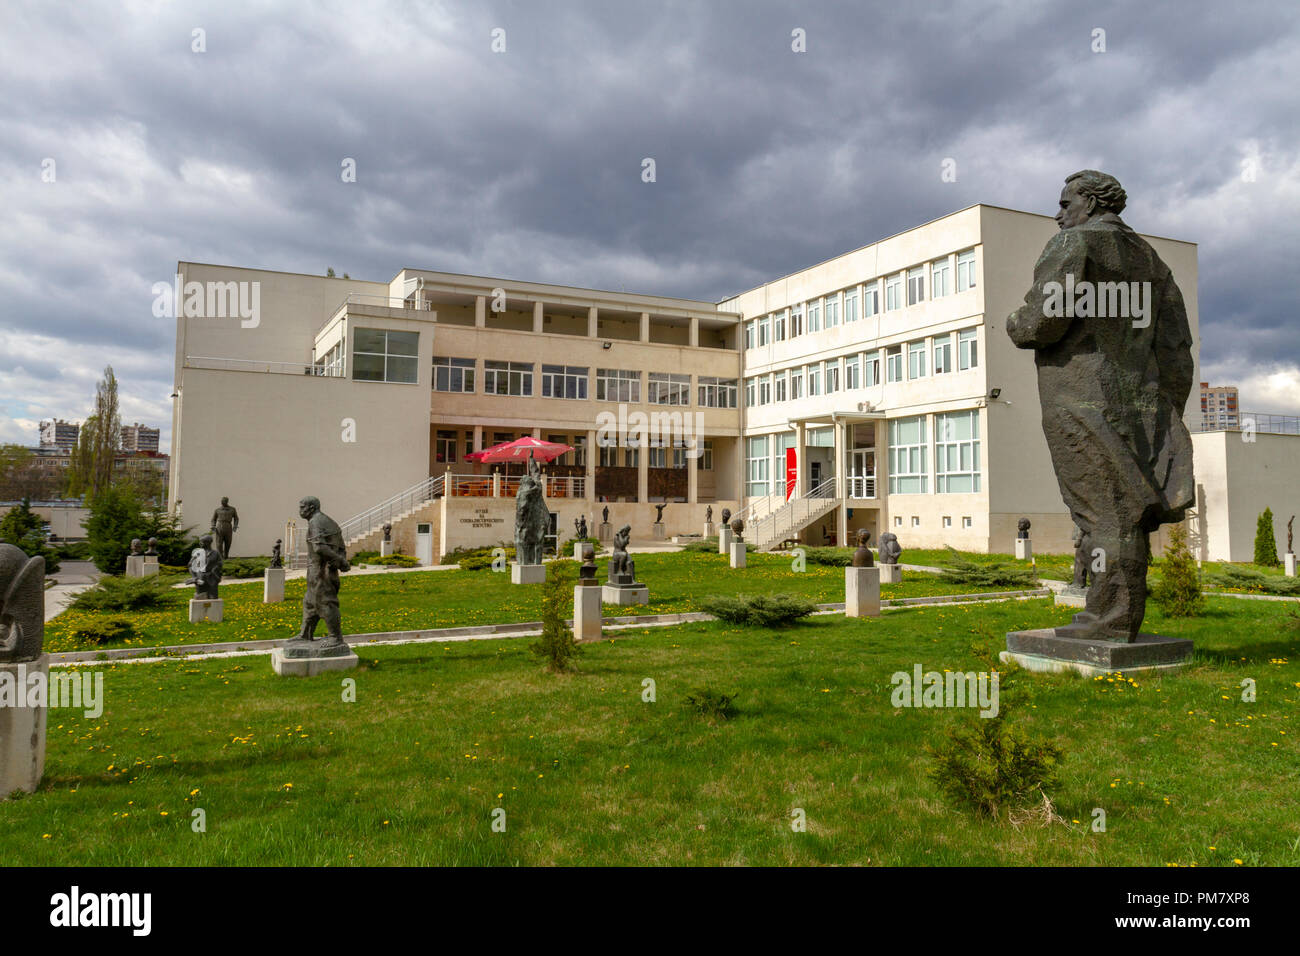 General view of the Museum of Socialist Art outdoor sculpture garden display, Sofia, Bulgaria. - Stock Image